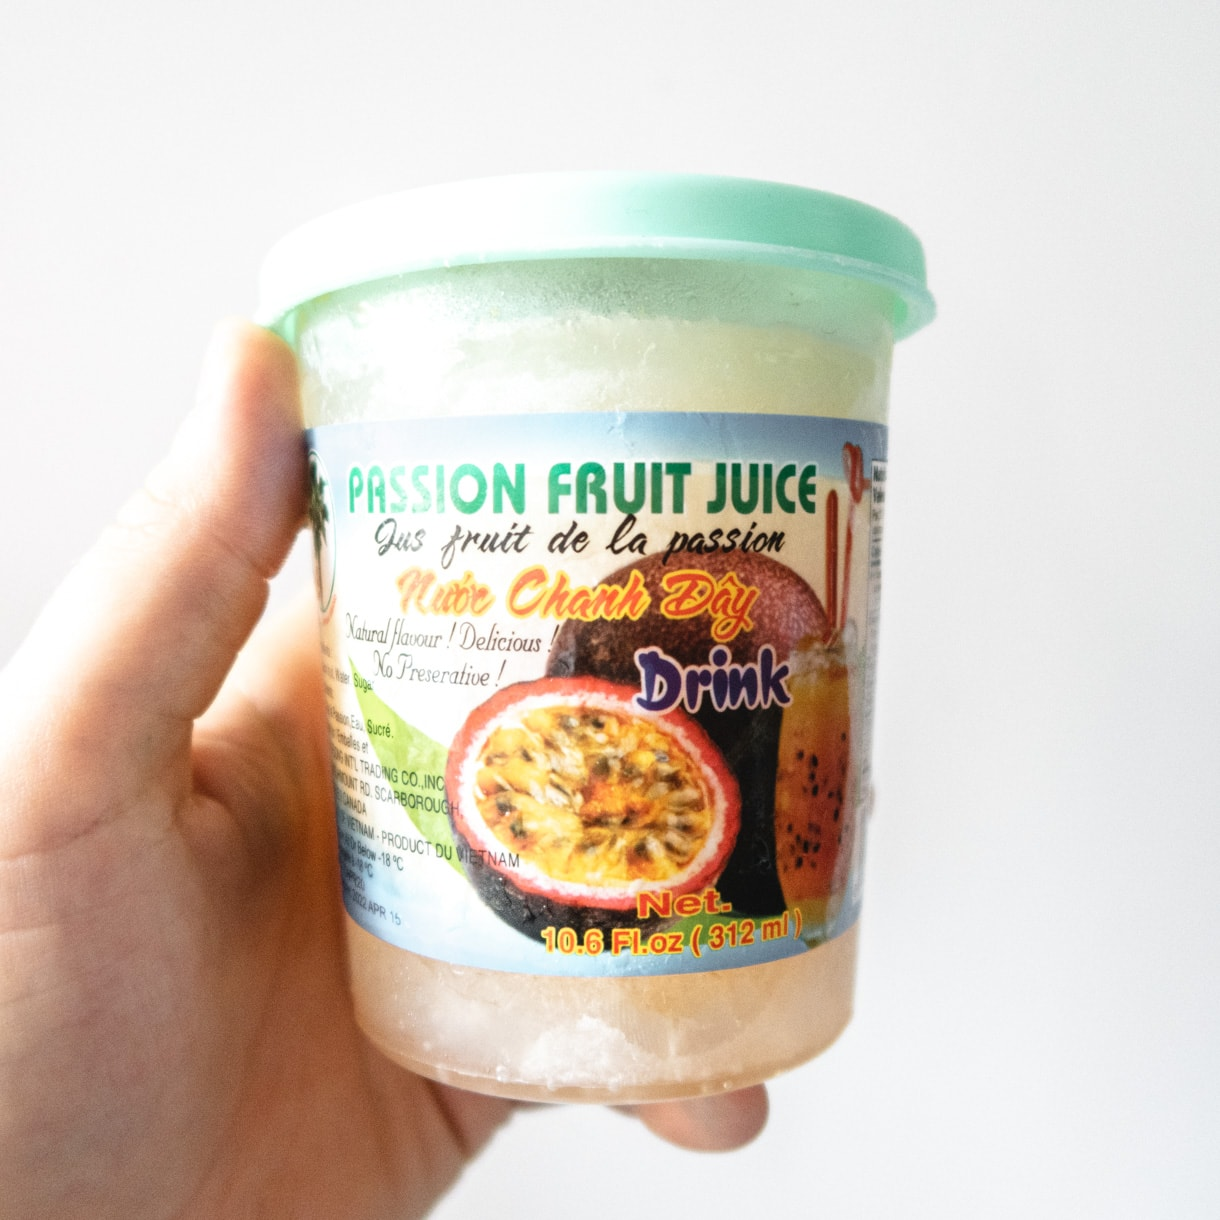 Frozen passion fruit juice